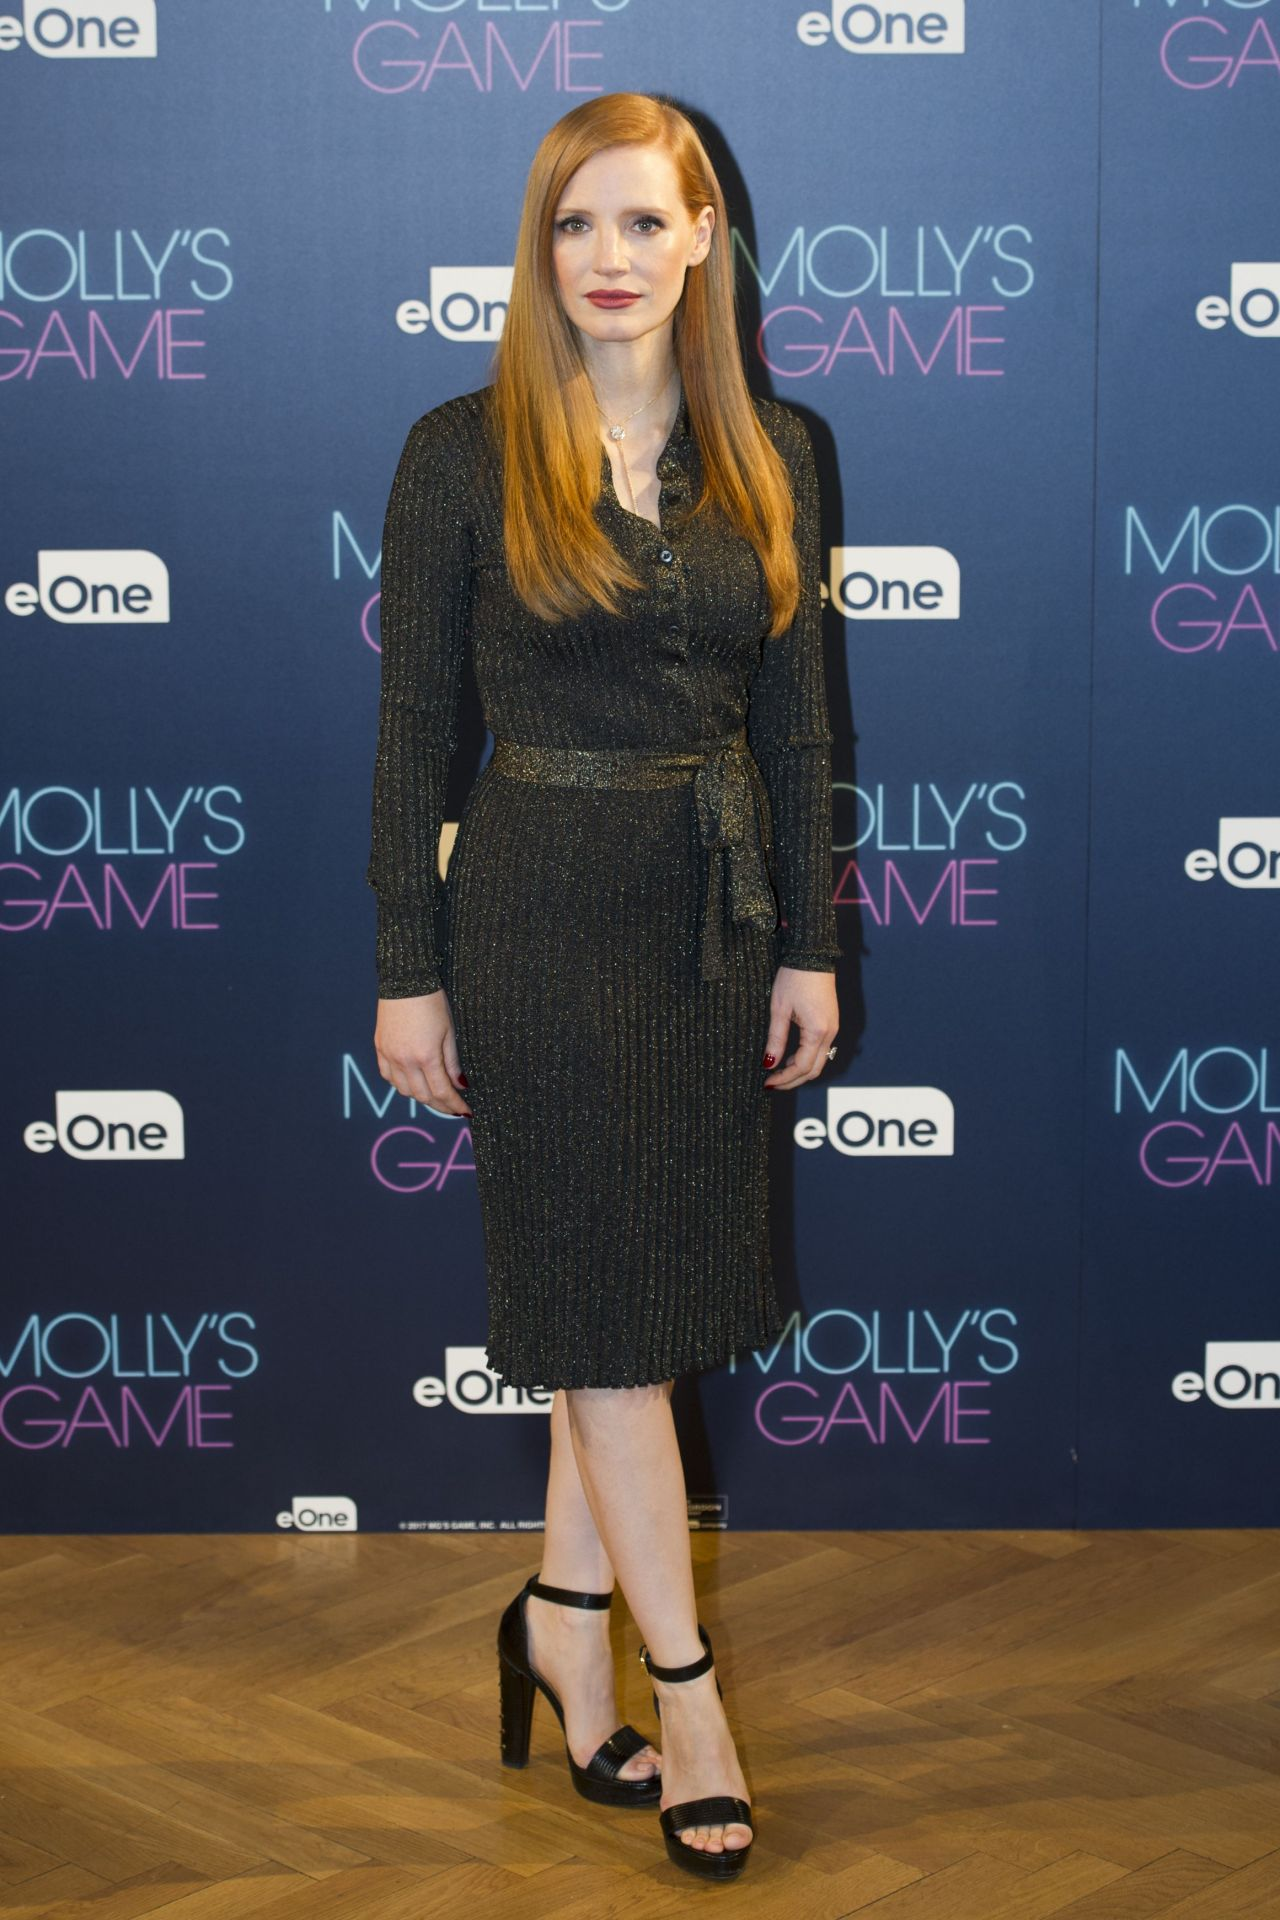 http://celebmafia.com/wp-content/uploads/2017/12/jessica-chastain-molly-s-game-photocall-in-madrid-3.jpg